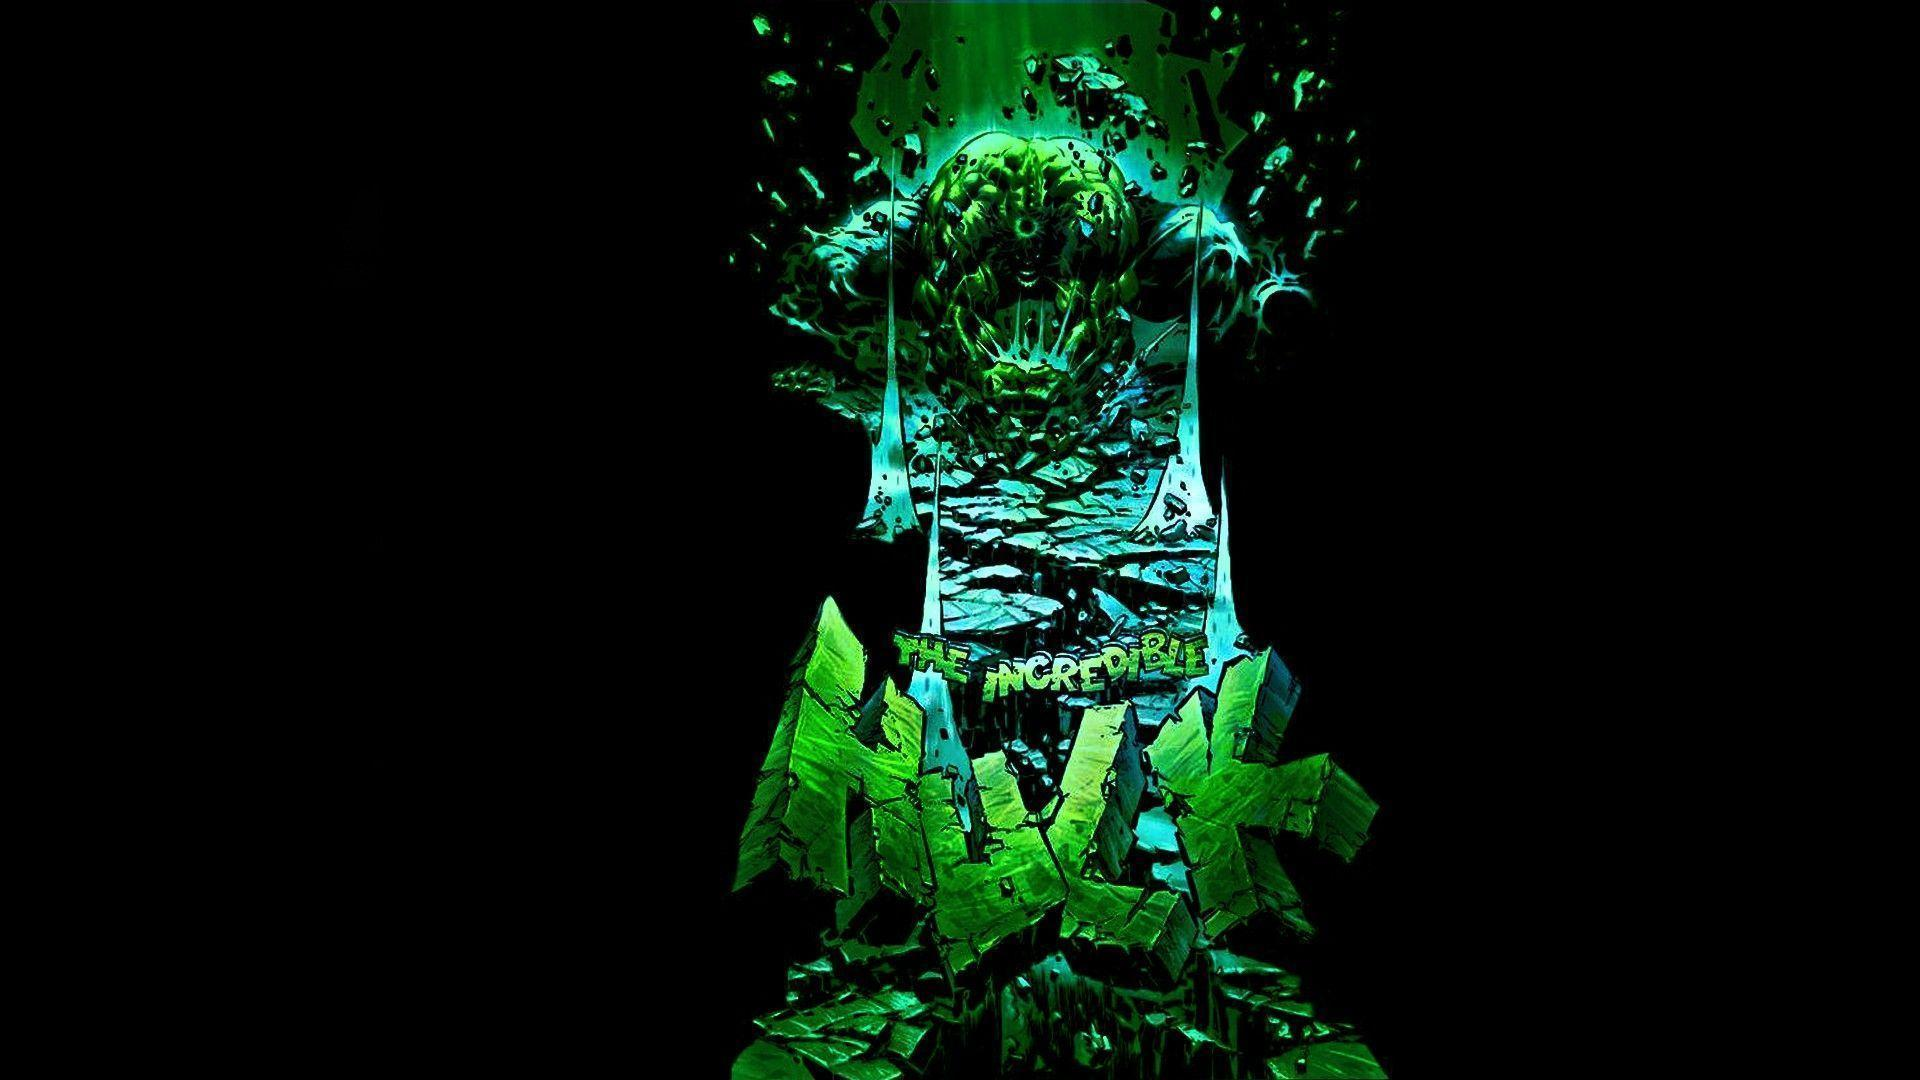 hd hulk wallpaper hd hulk wallpaper 1920x1080 hulk wallpaper